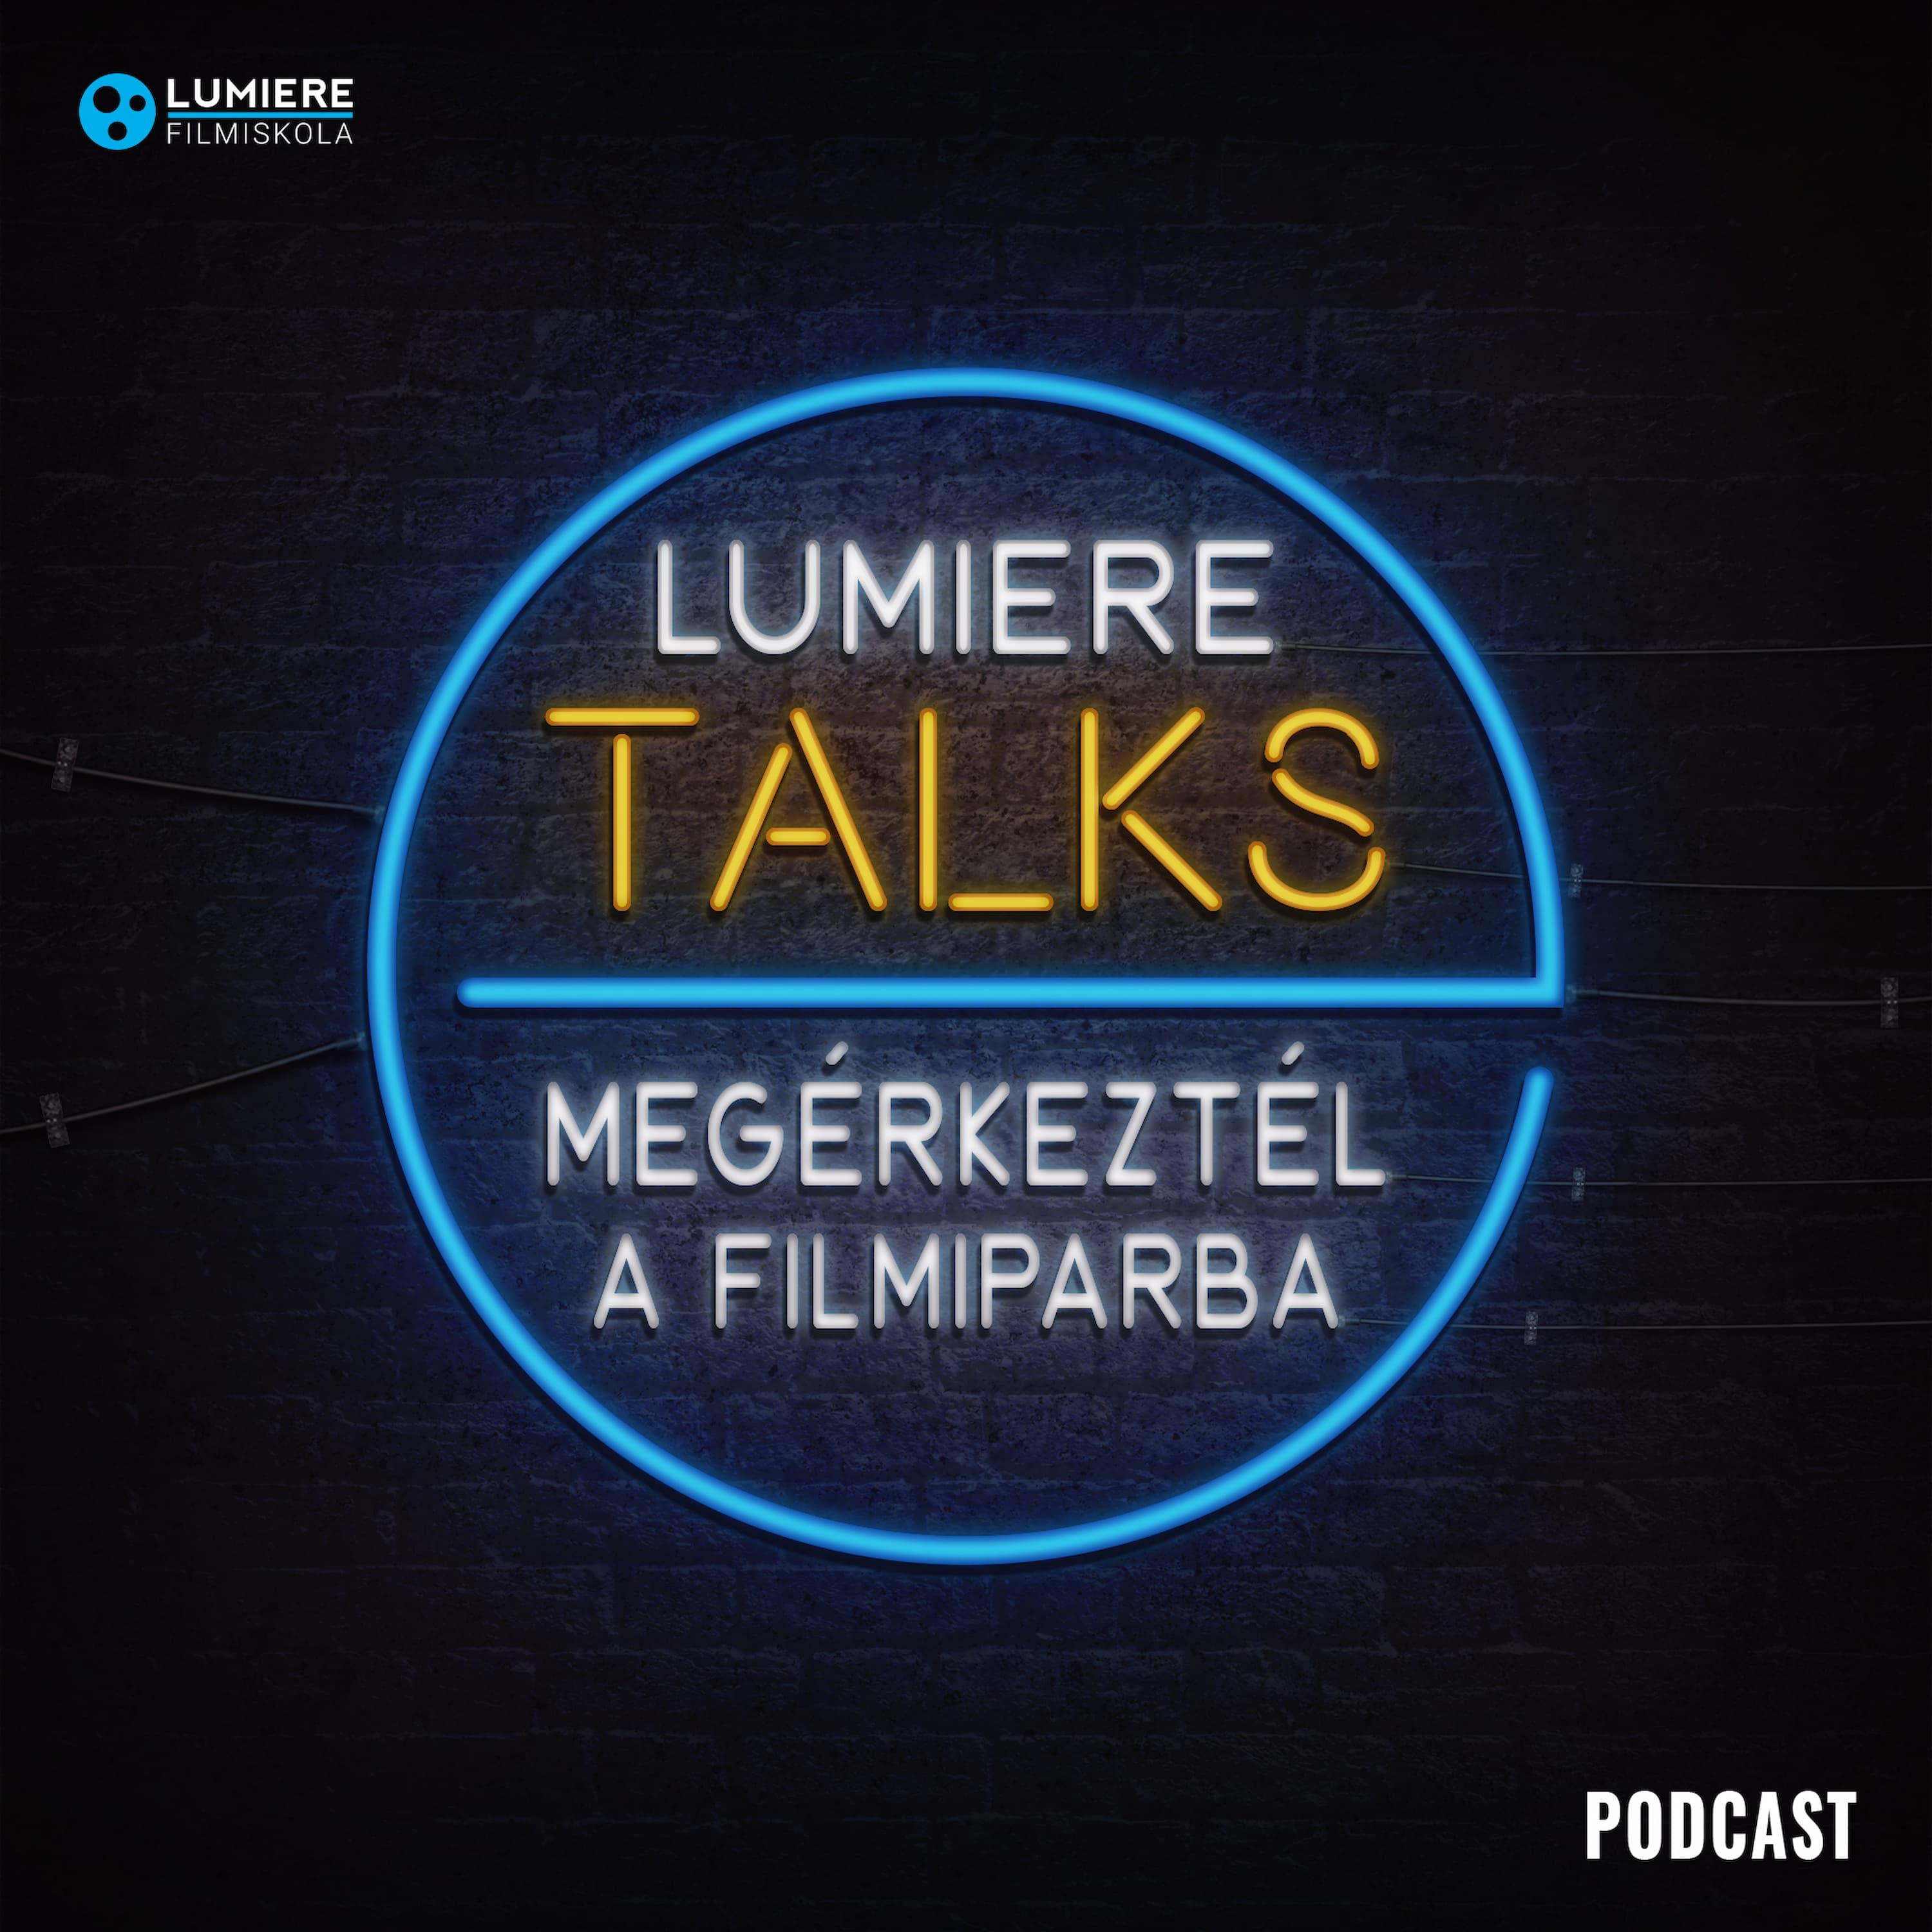 Artwork for podcast Lumiere Talks